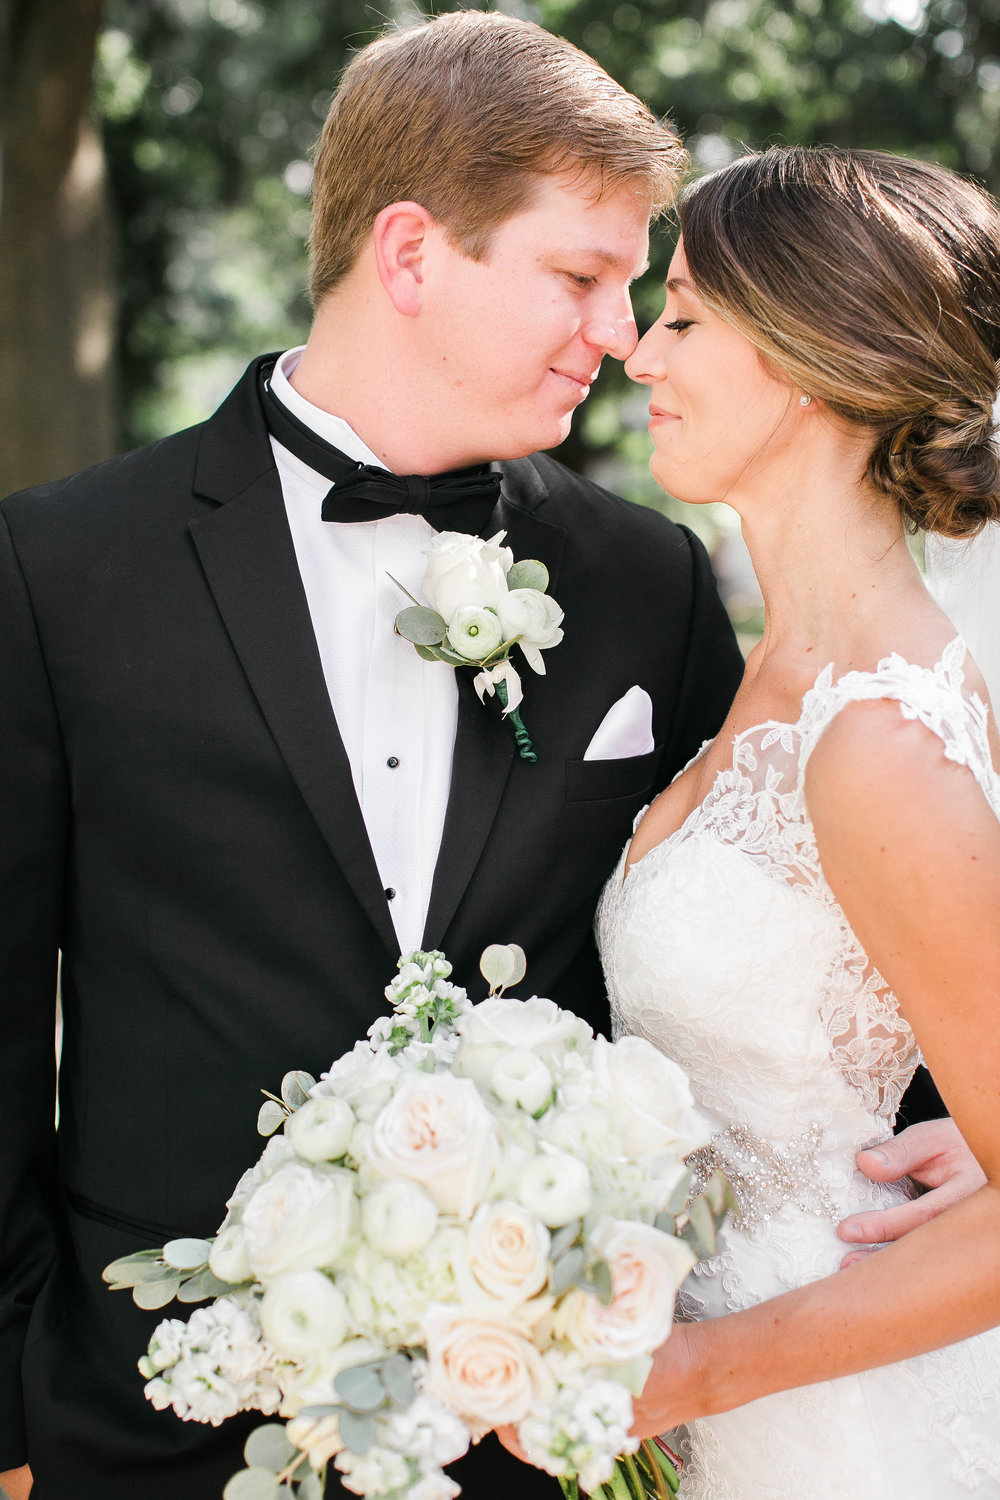 Kate & Alex's Savannah, GA wedding by Sincerely Yours Events